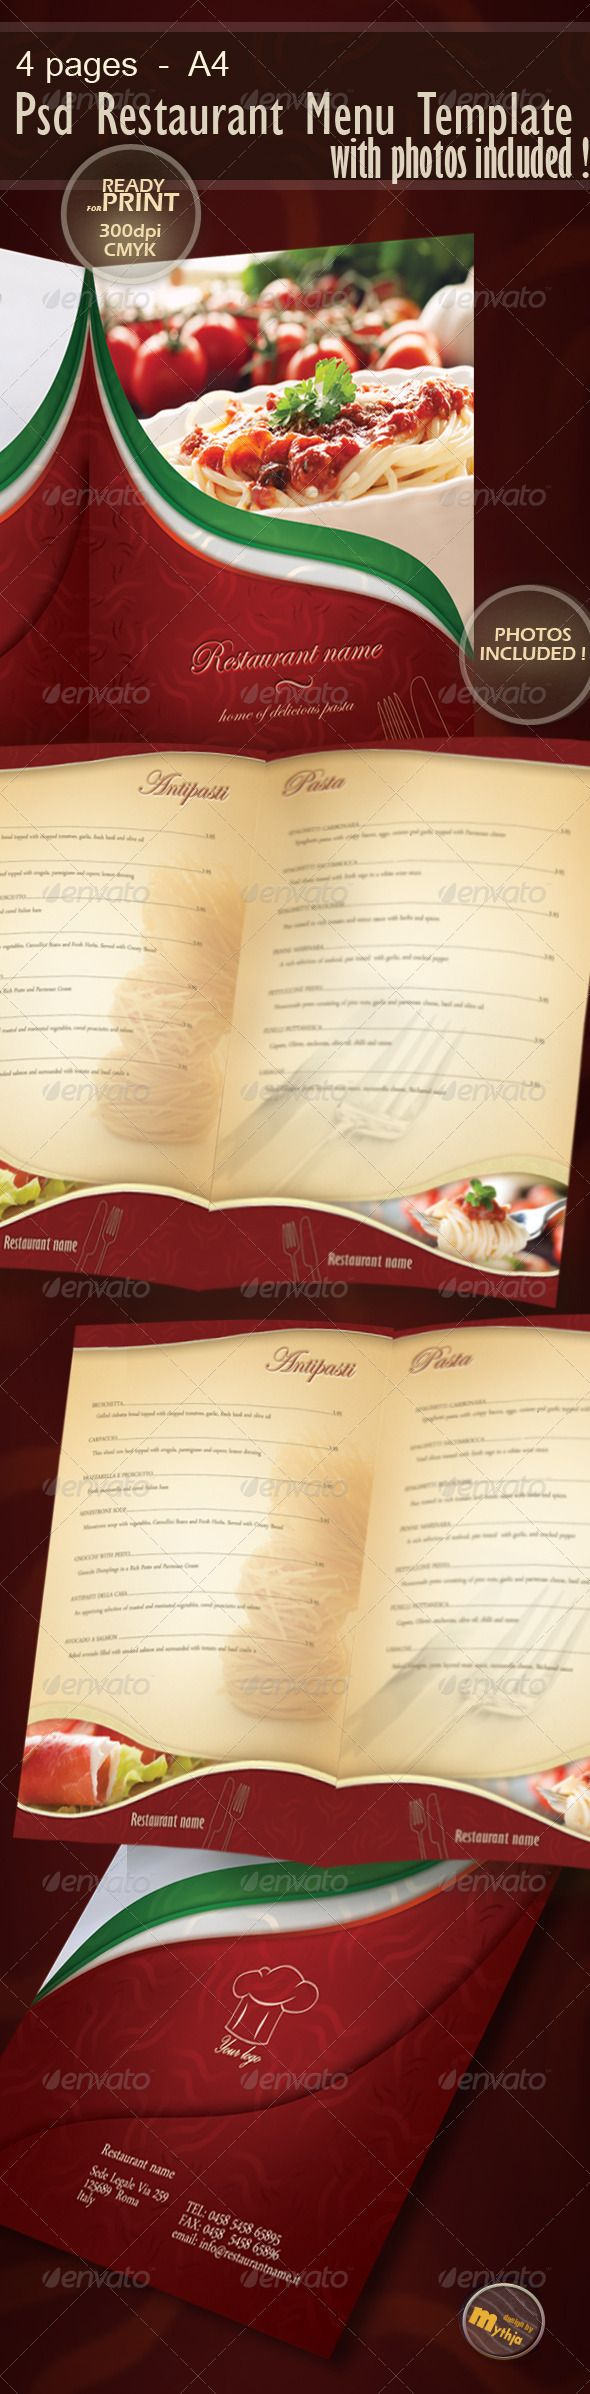 business letter format word 2010%0A restaurant menu fonts